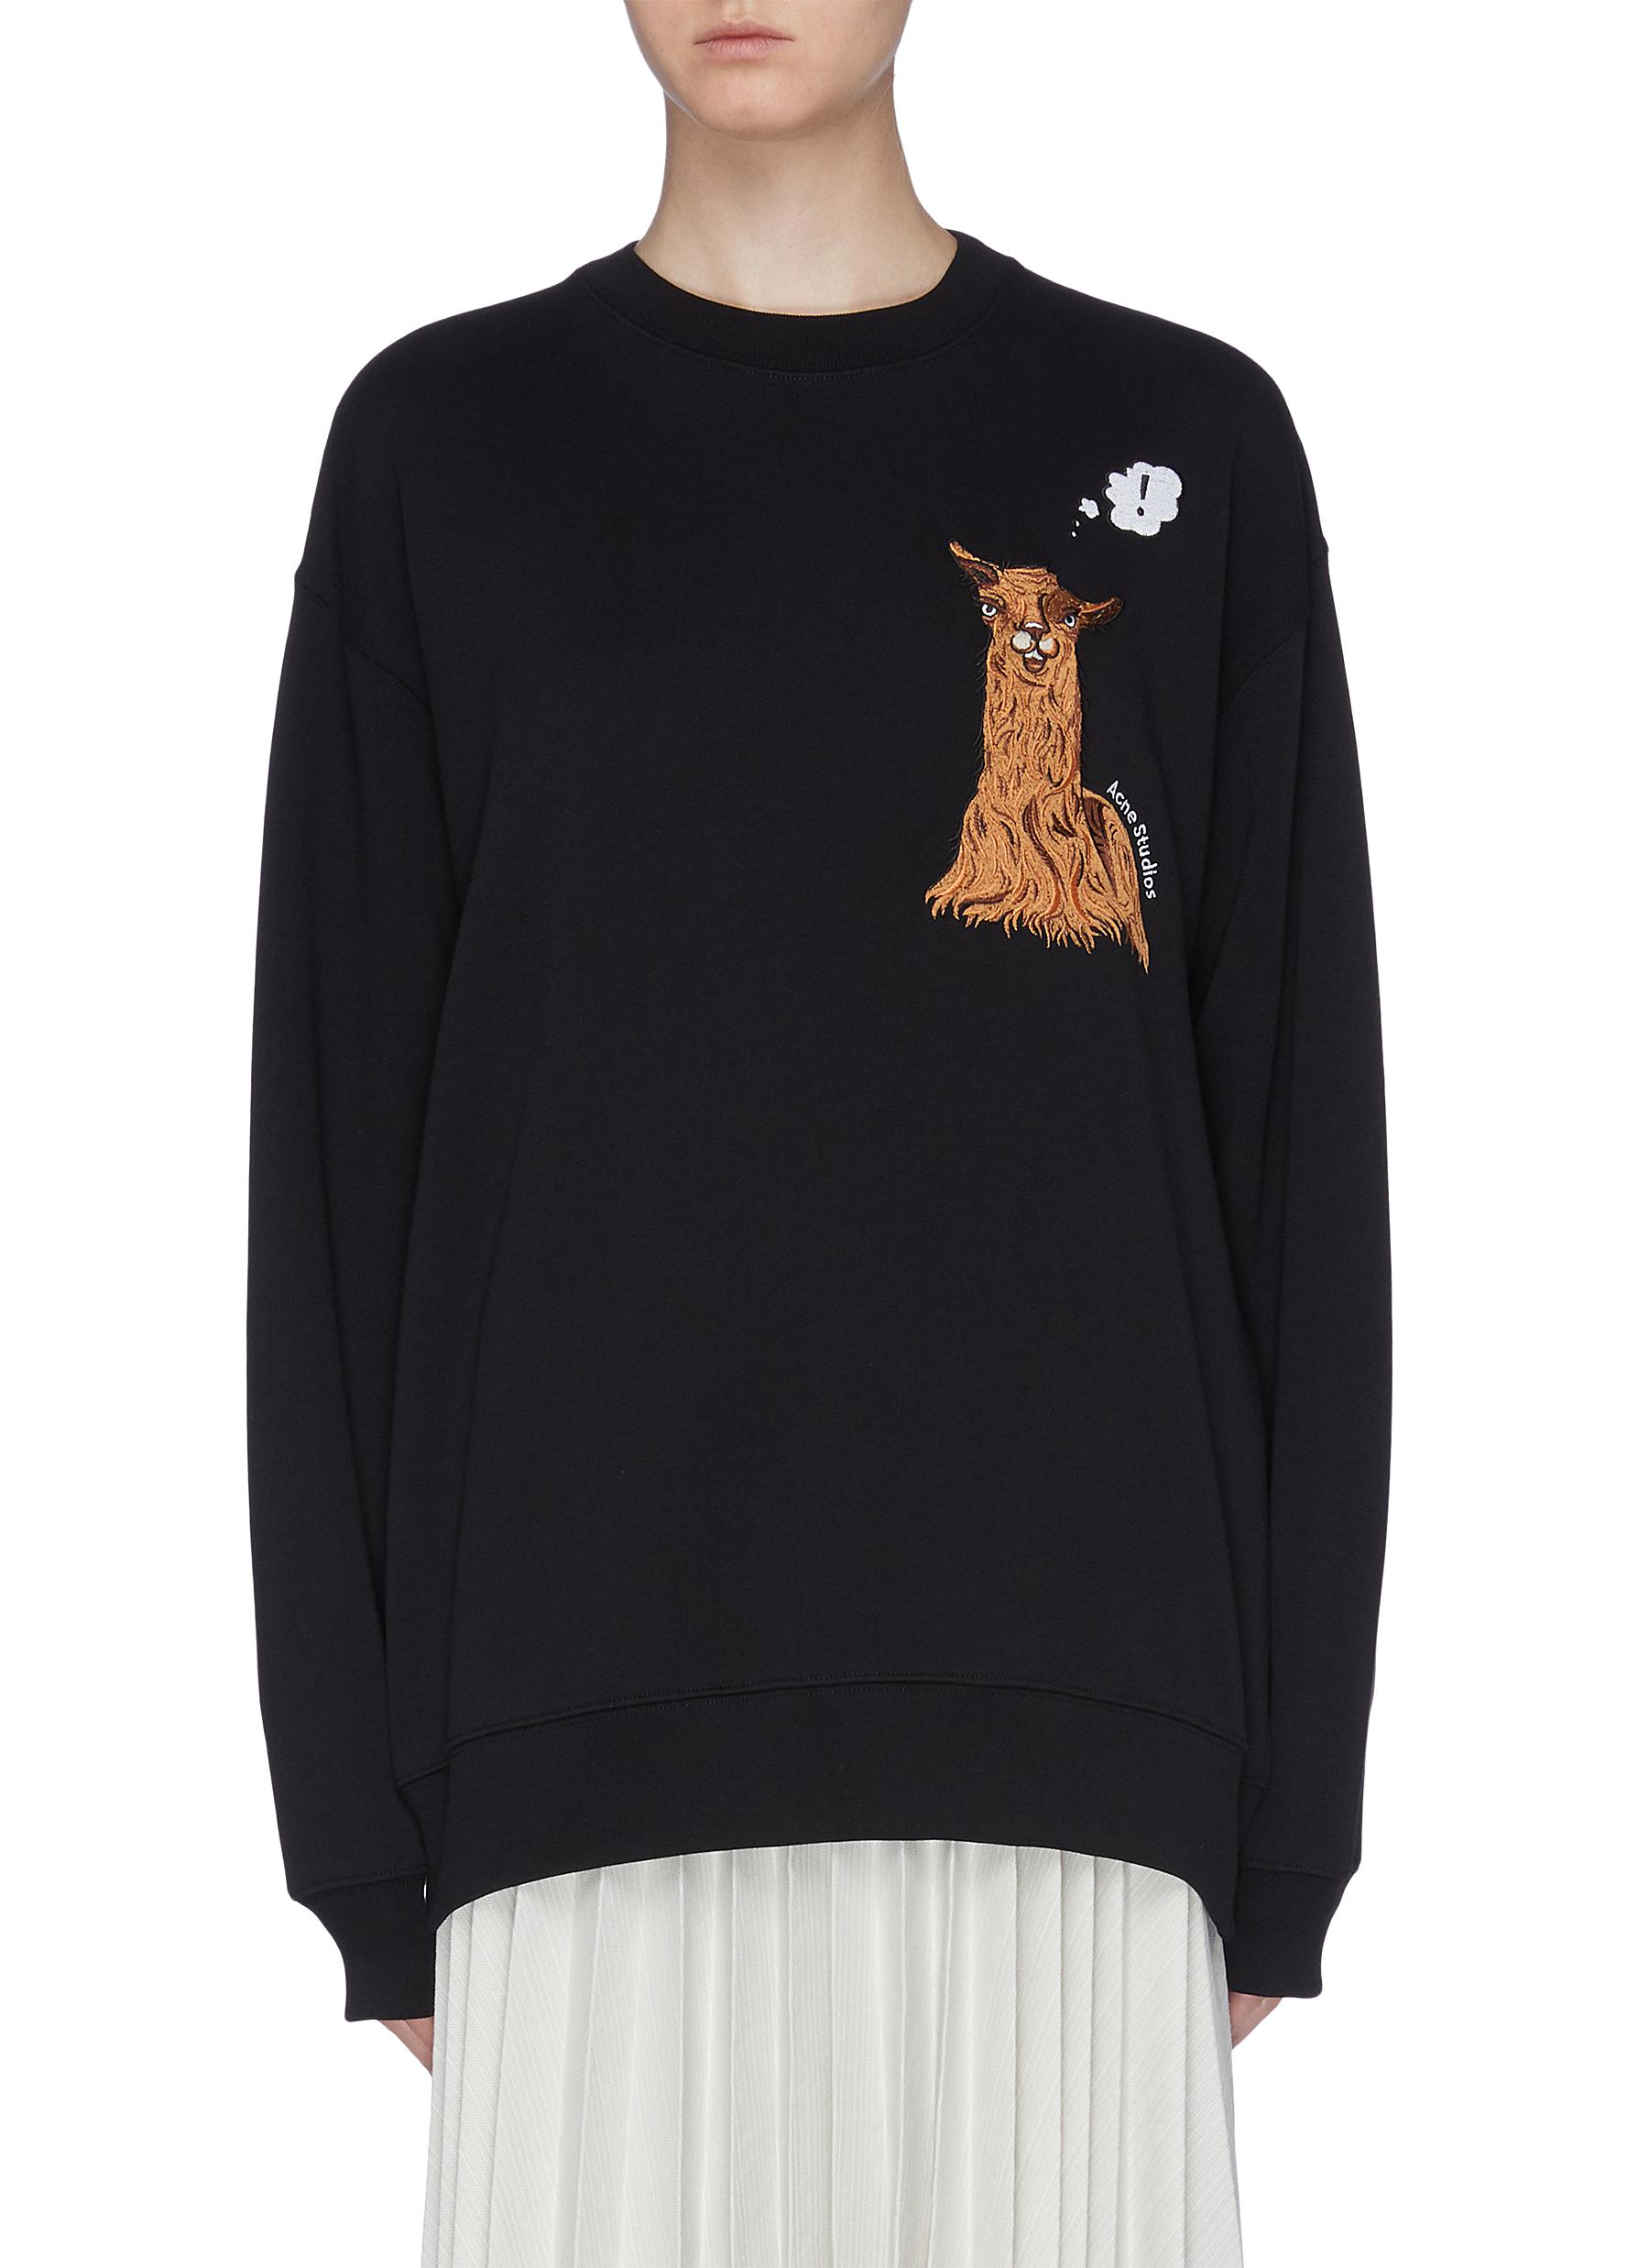 Animal embroidered oversized sweatshirt by Acne Studios